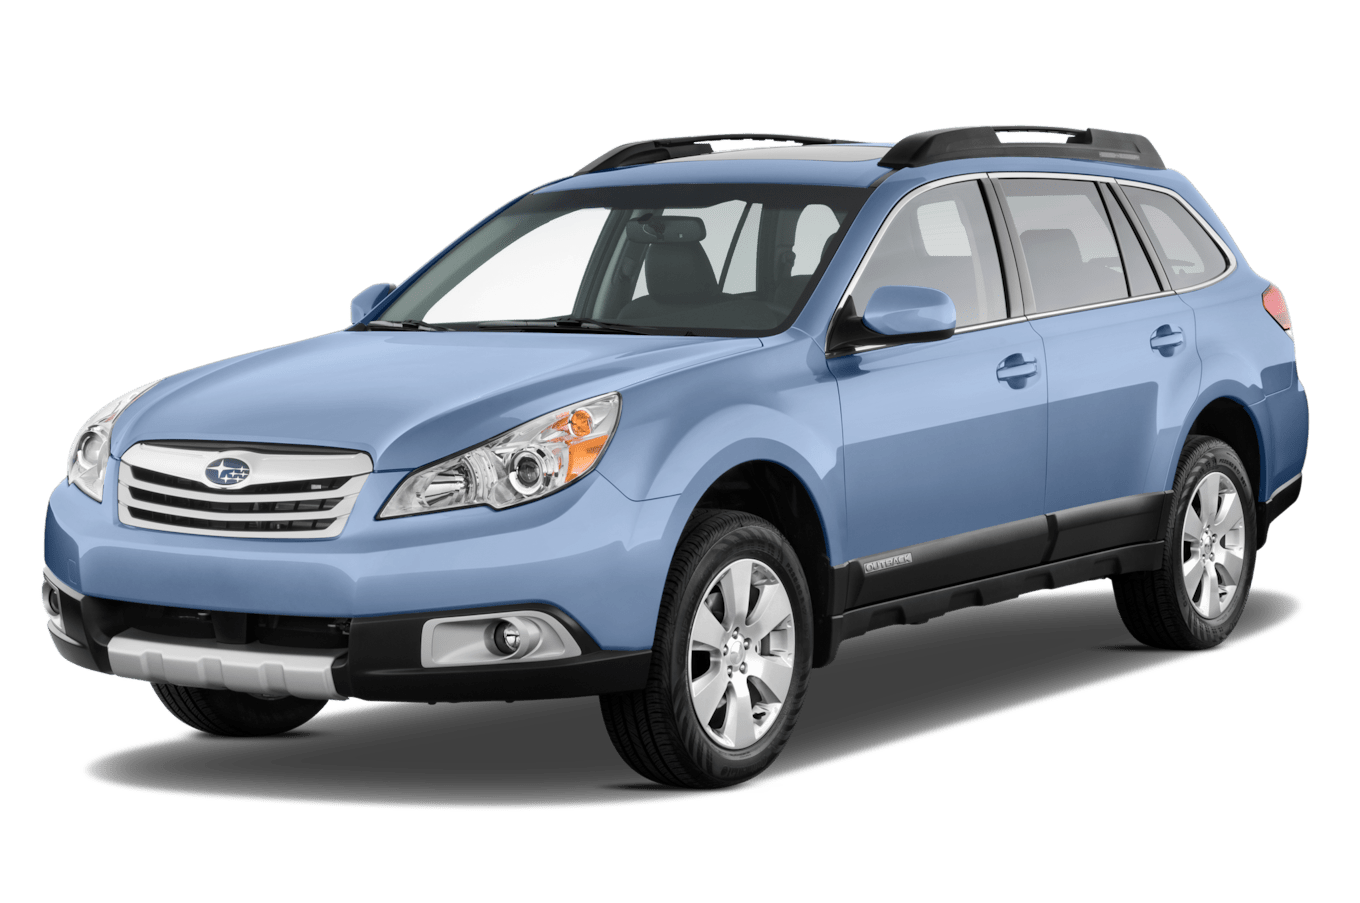 2010 subaru outback reviews research outback prices specs 2 5 subaru h4 engine diagram [ 392:261 x 1360 Pixel ]